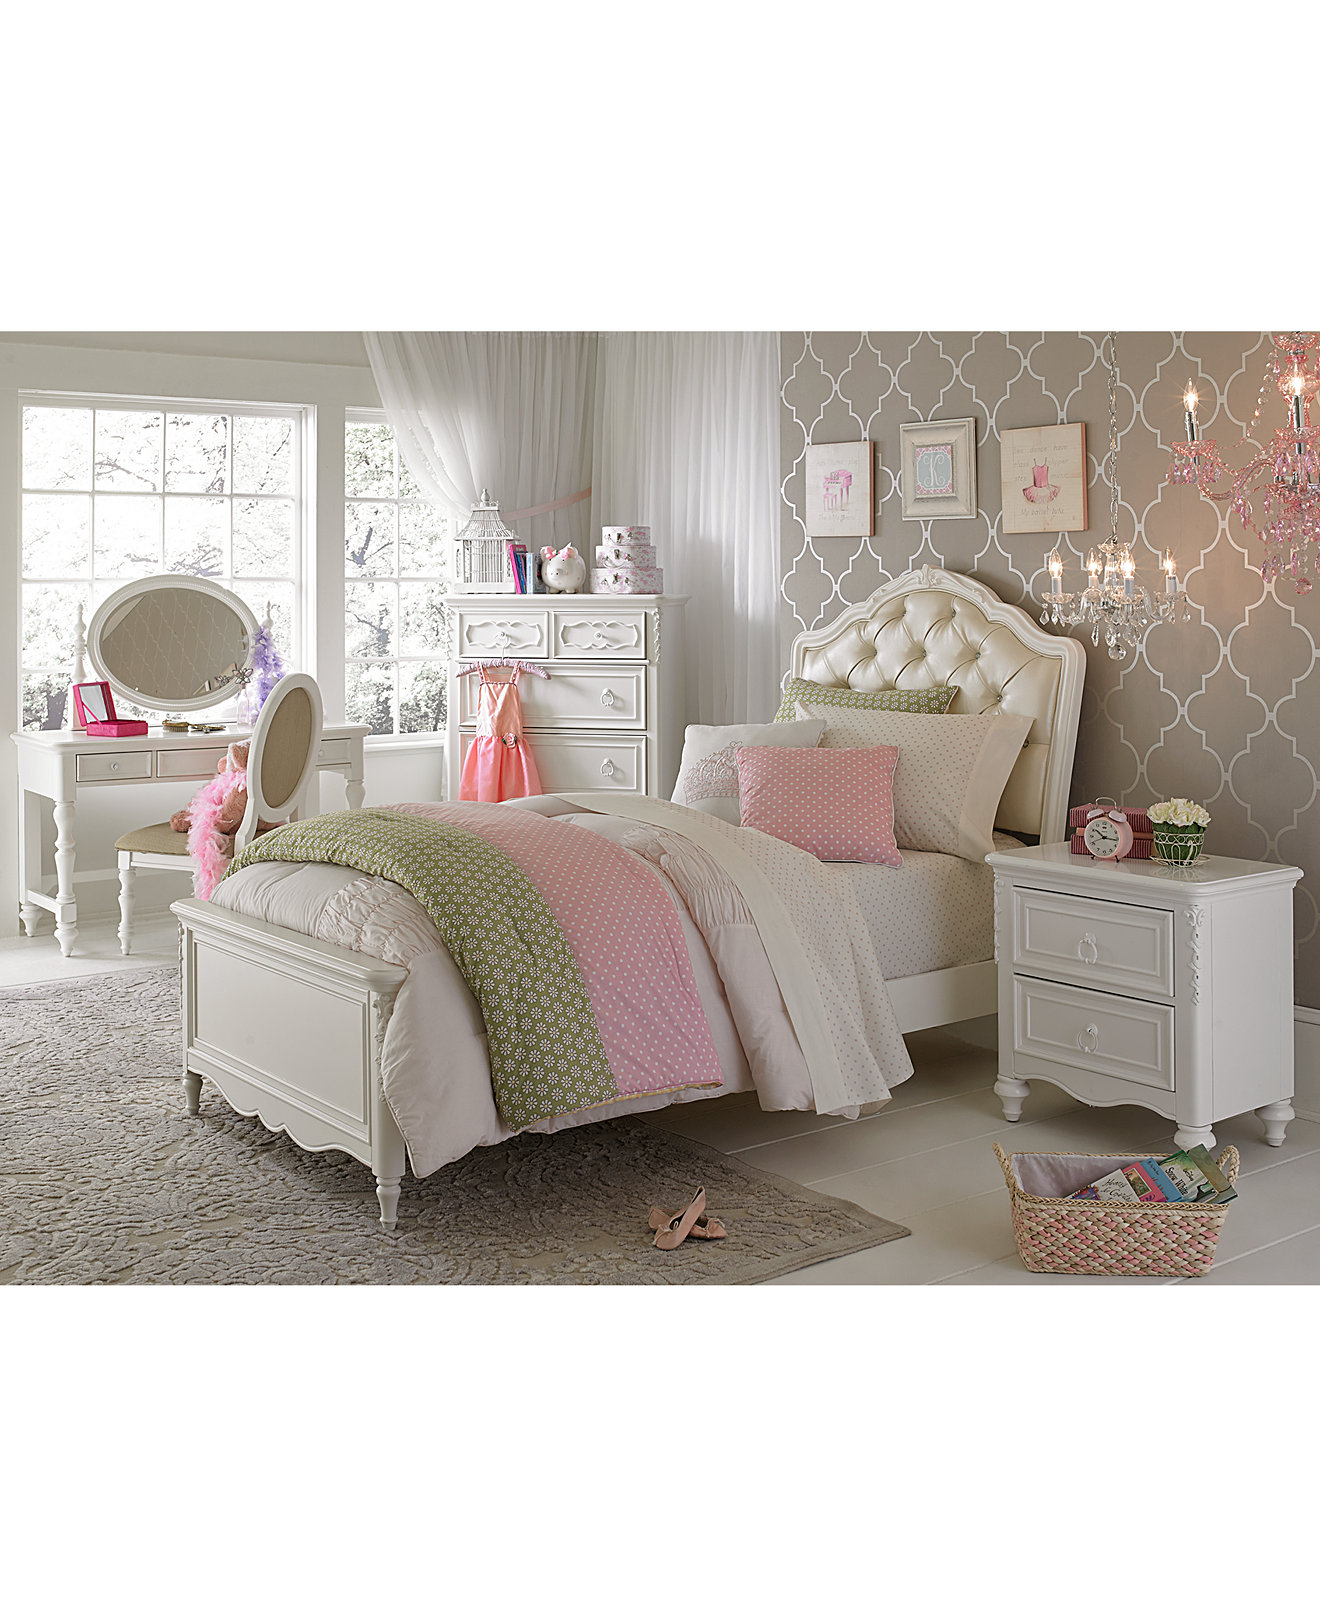 Celestial Kids Bedroom Furniture Collection. Kids   Baby Nursery Furniture   Macy s